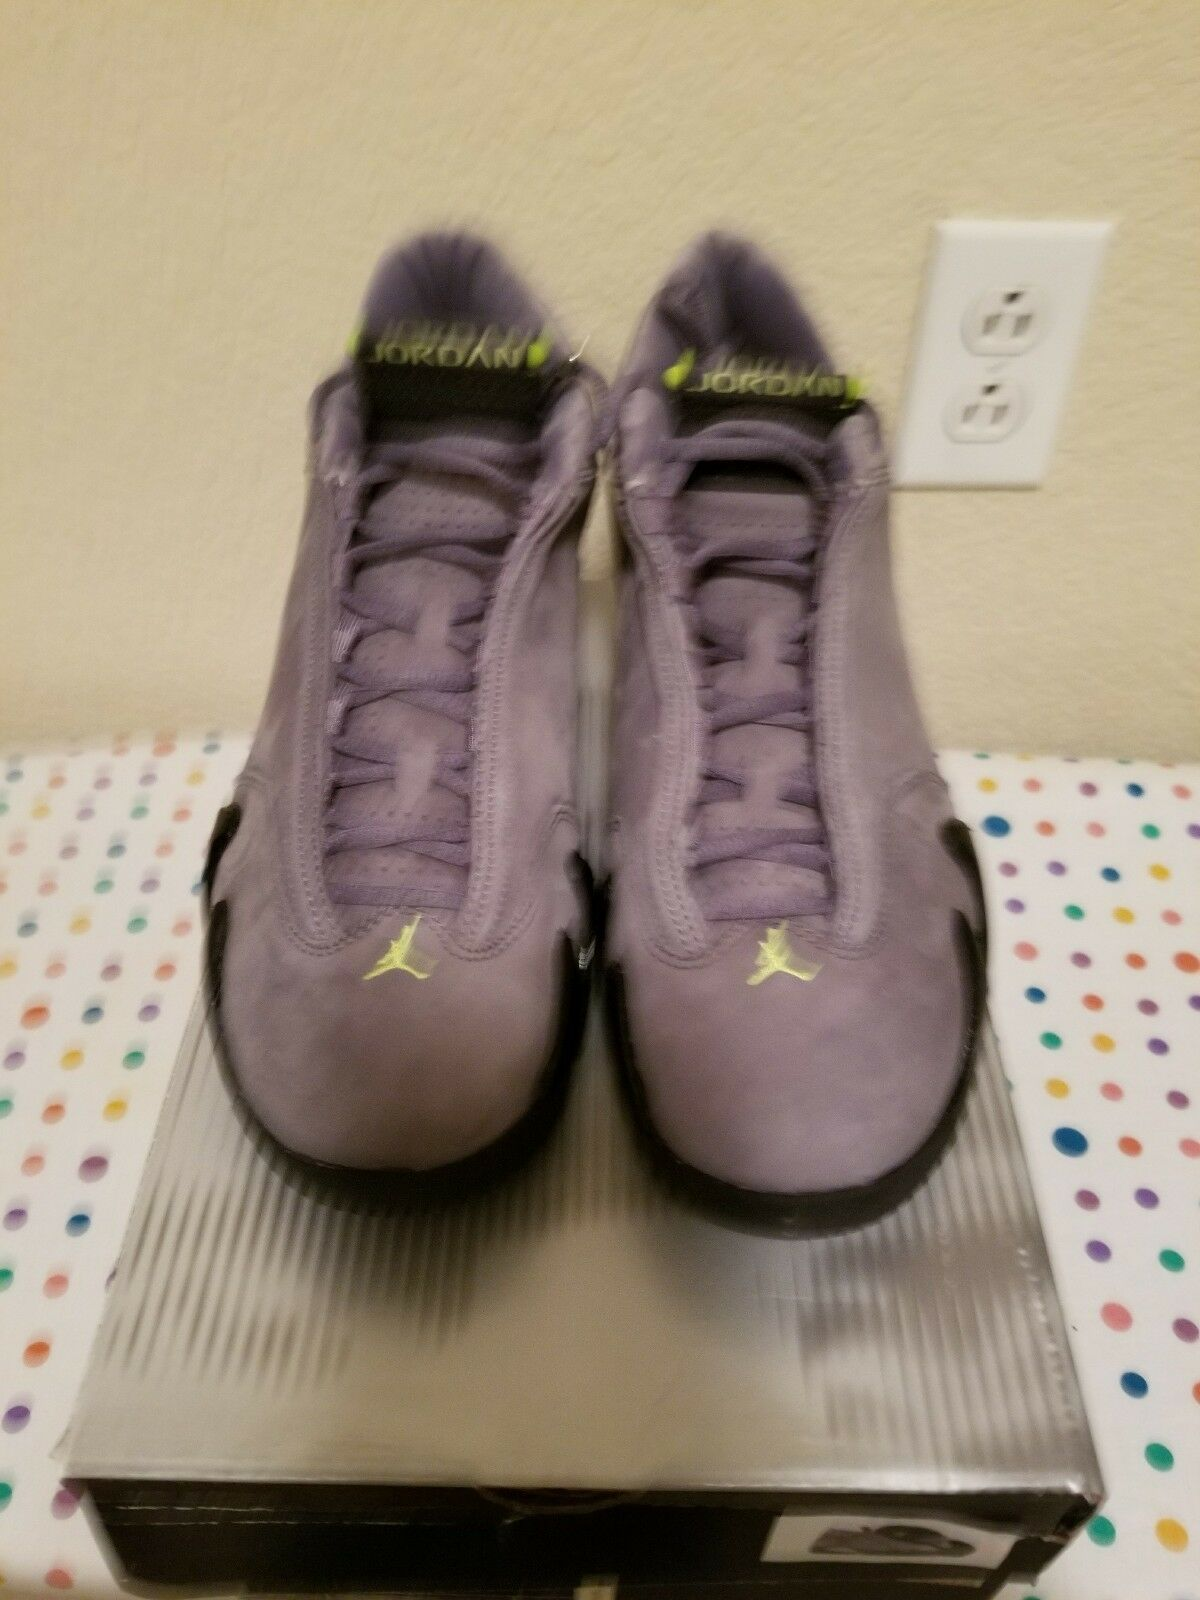 2005 Air Jordan Retro 14 Graphite  SZ10 DS Nike yeezy SB